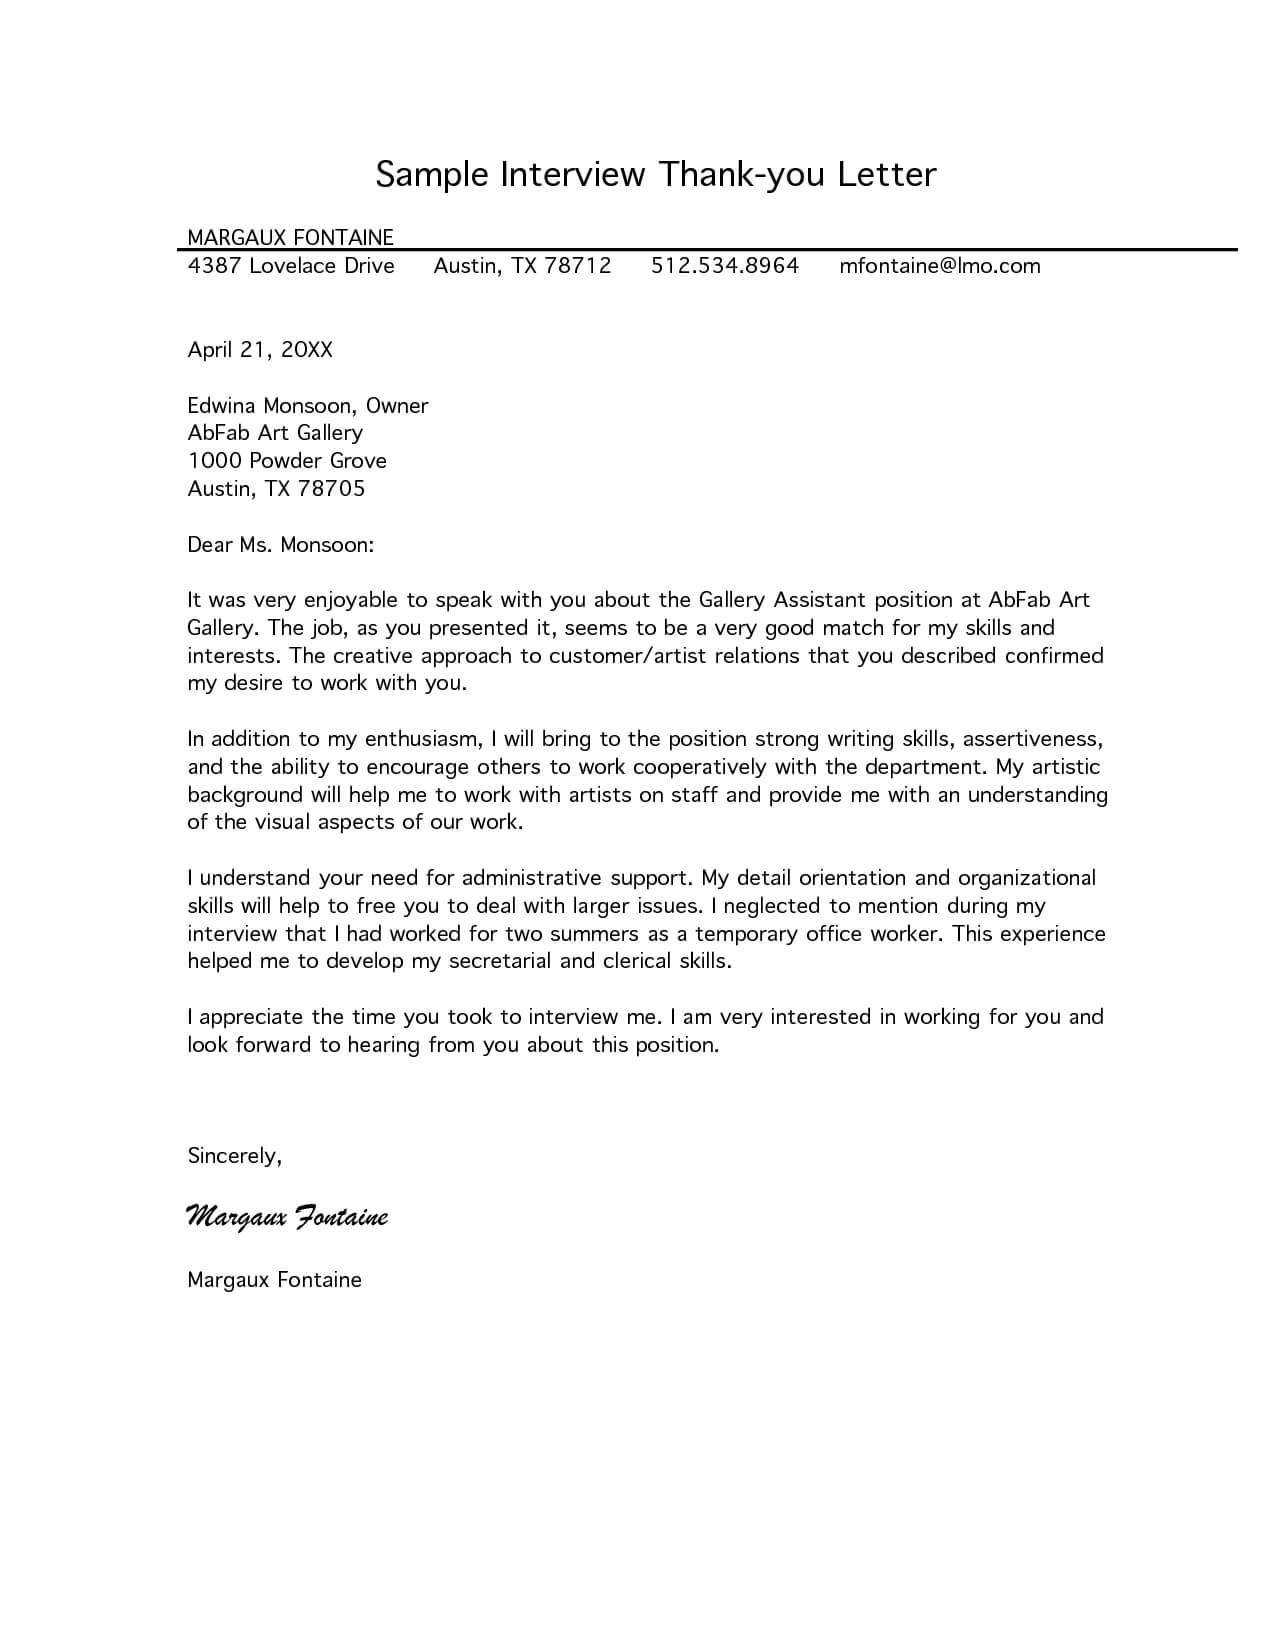 Free Letter Of Interest Templates   Sample Interview Thank throughout Letter Of Interest Template Microsoft Word